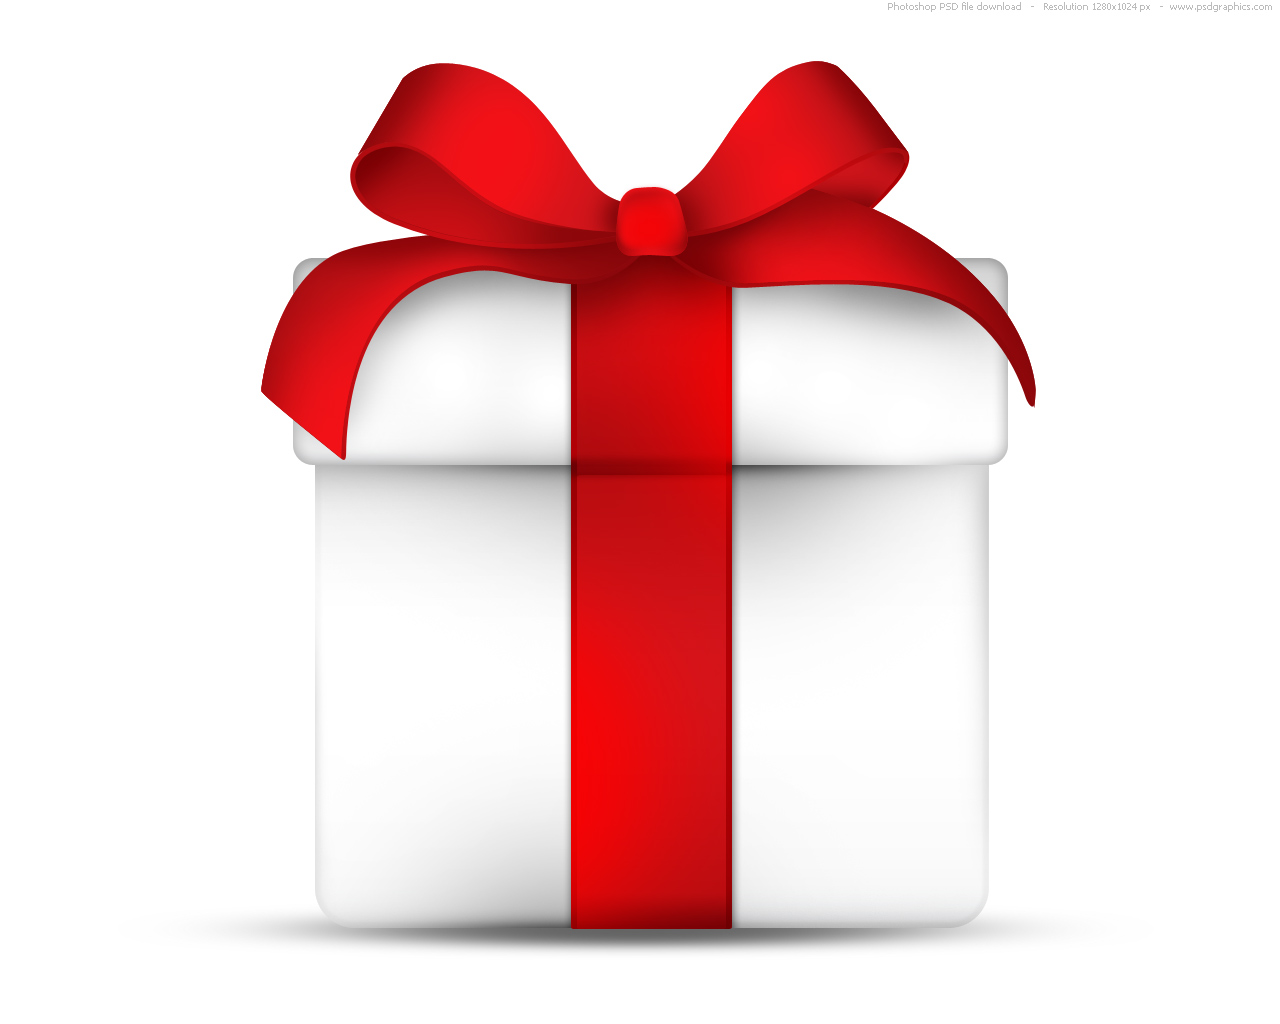 presents-iconswhite-gift-box-with-red-ribbon-bow-psd-icon-psdgraphics-truxzfq3